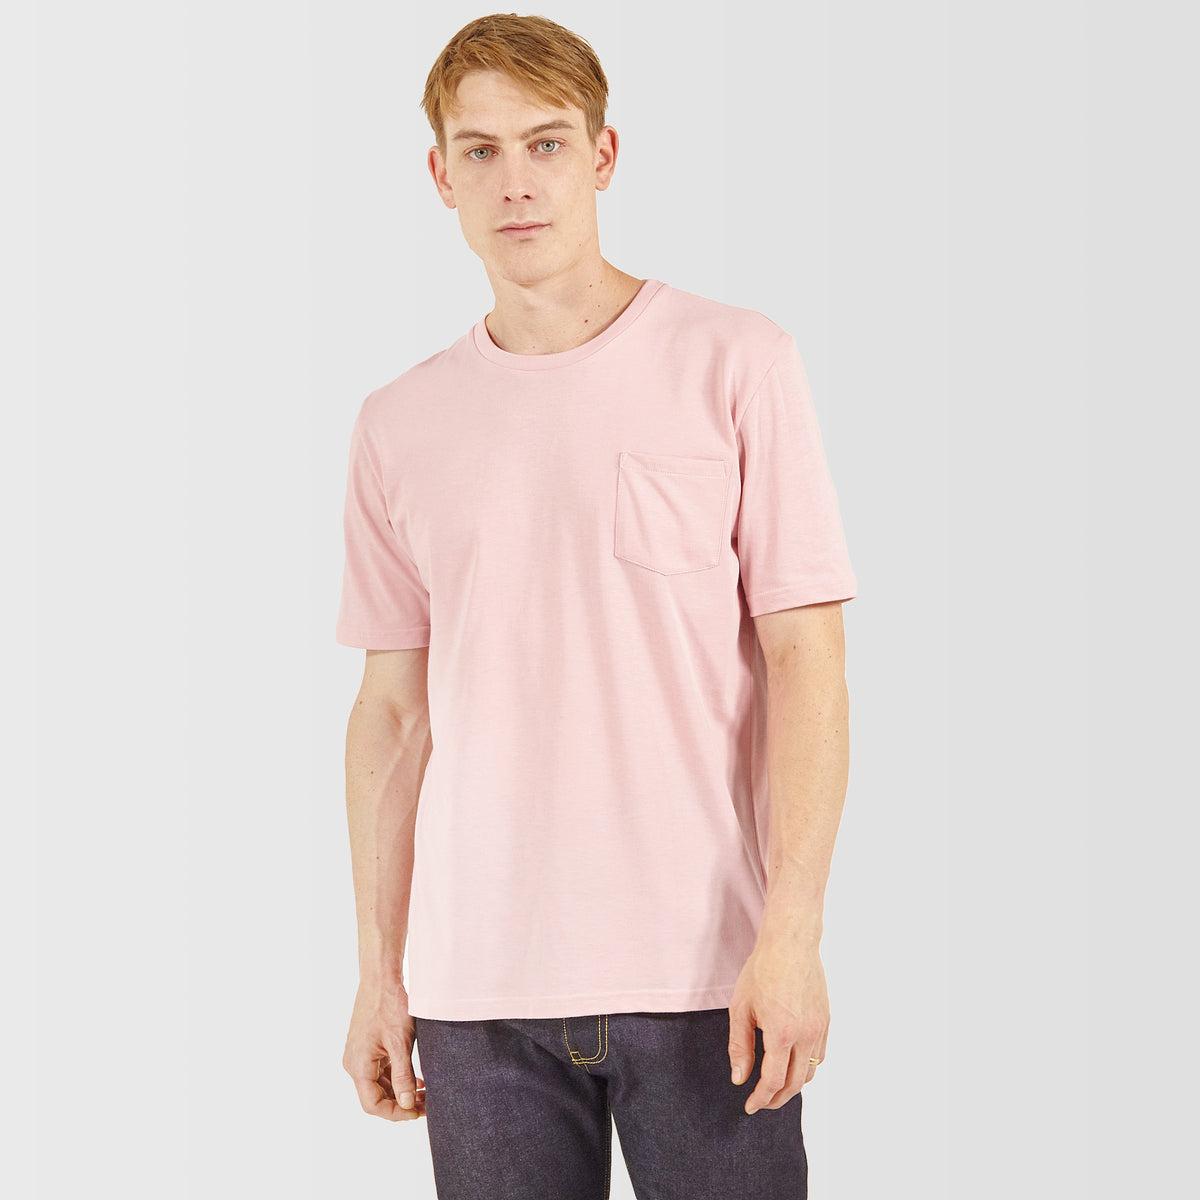 Men's Short Sleeve Pocket T-Shirt Pink - Community Clothing